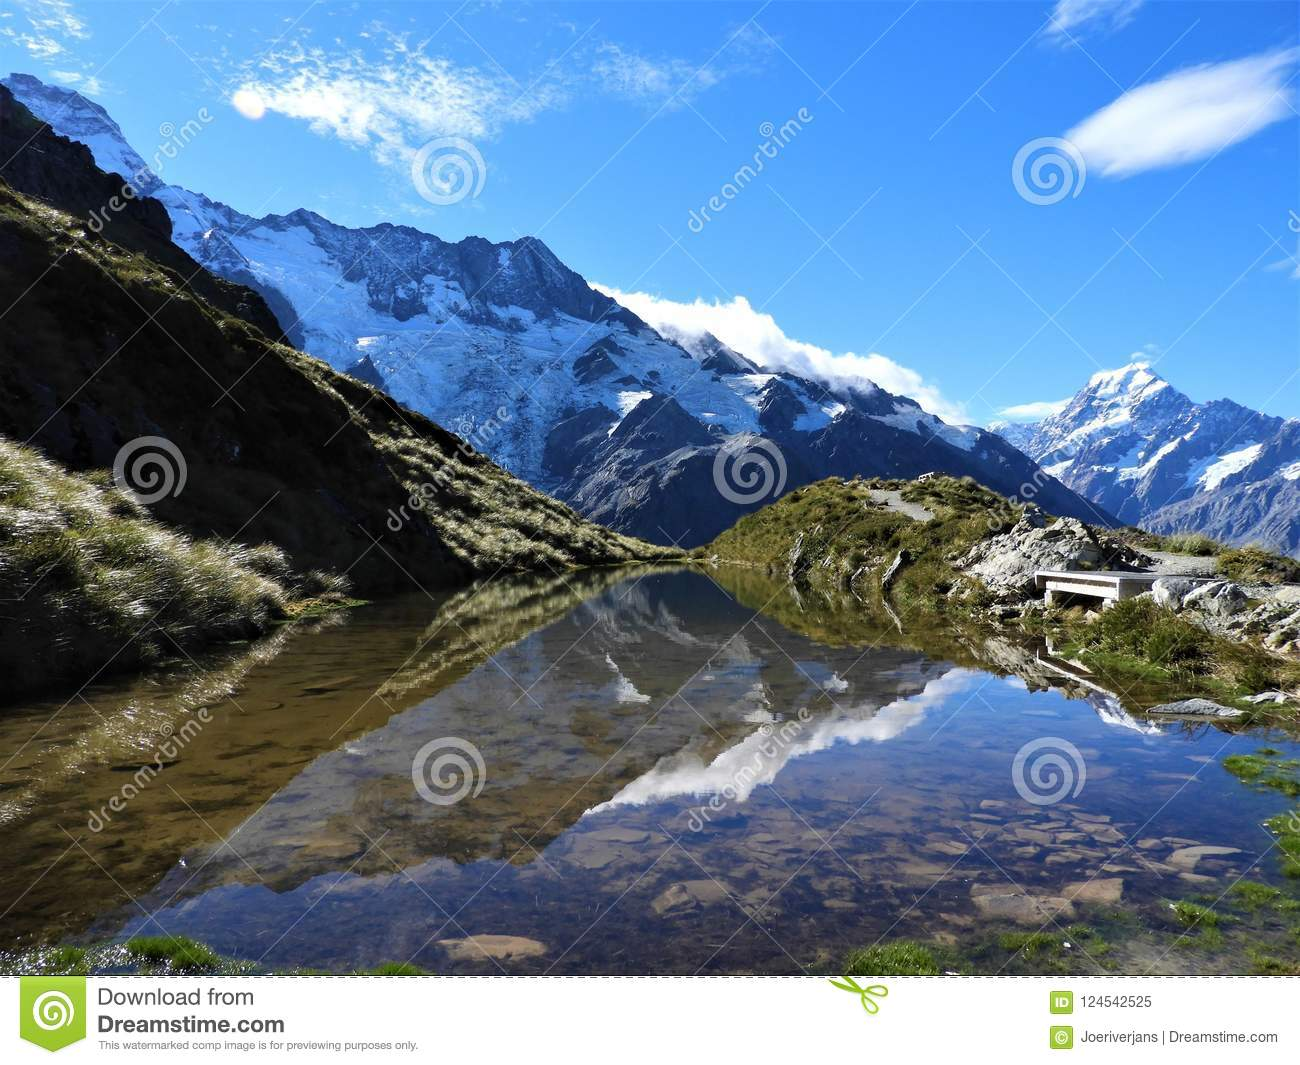 Mount cook national park is a real gem stock image image of bridge download mount cook national park is a real gem stock image image of bridge publicscrutiny Image collections